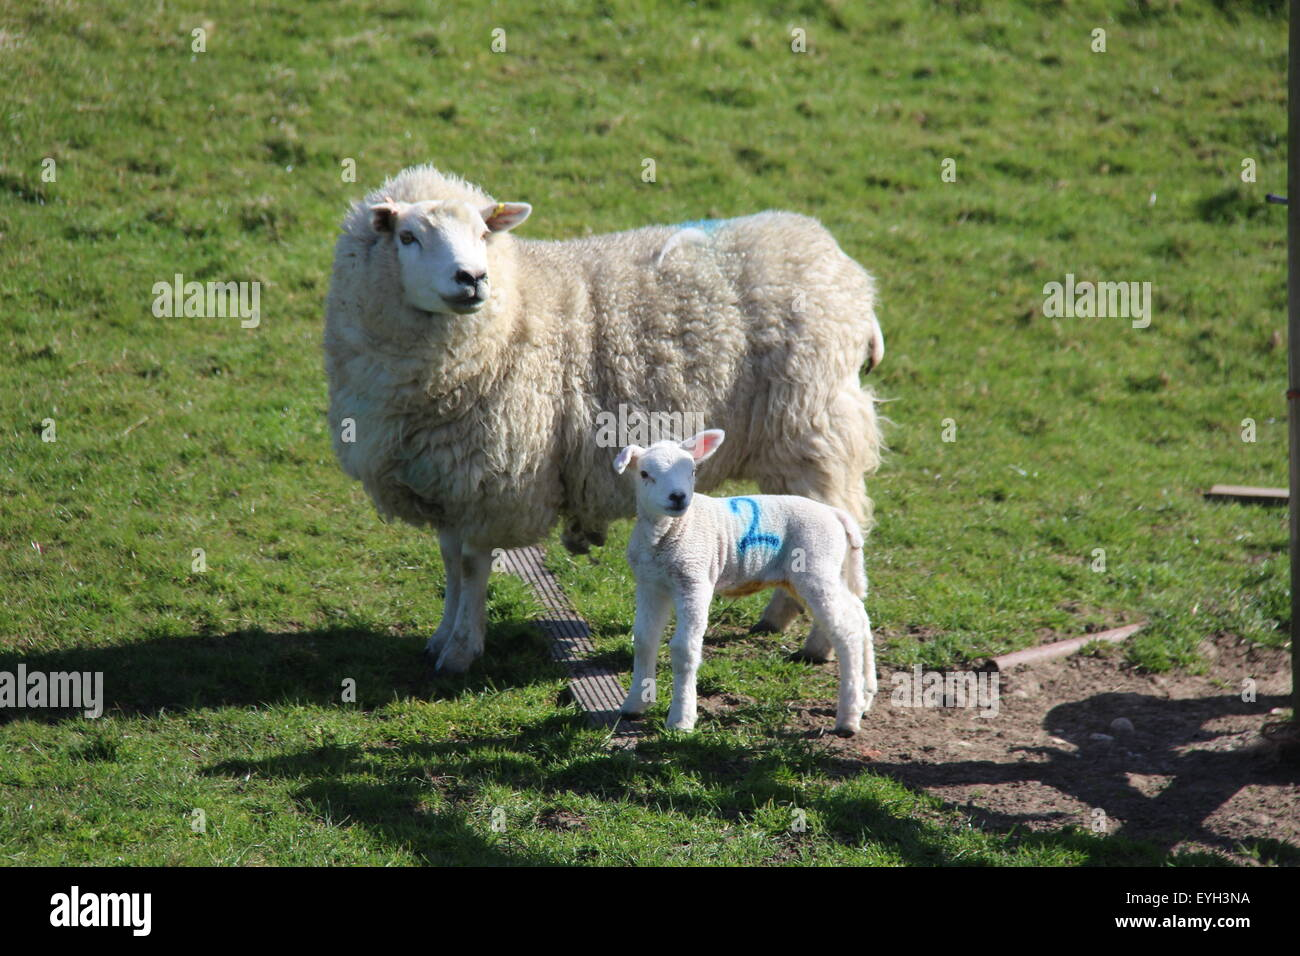 PORTRAIT OF EWE WITH ONE LAMB BOTH LOOKING AT CAMERA - Stock Image